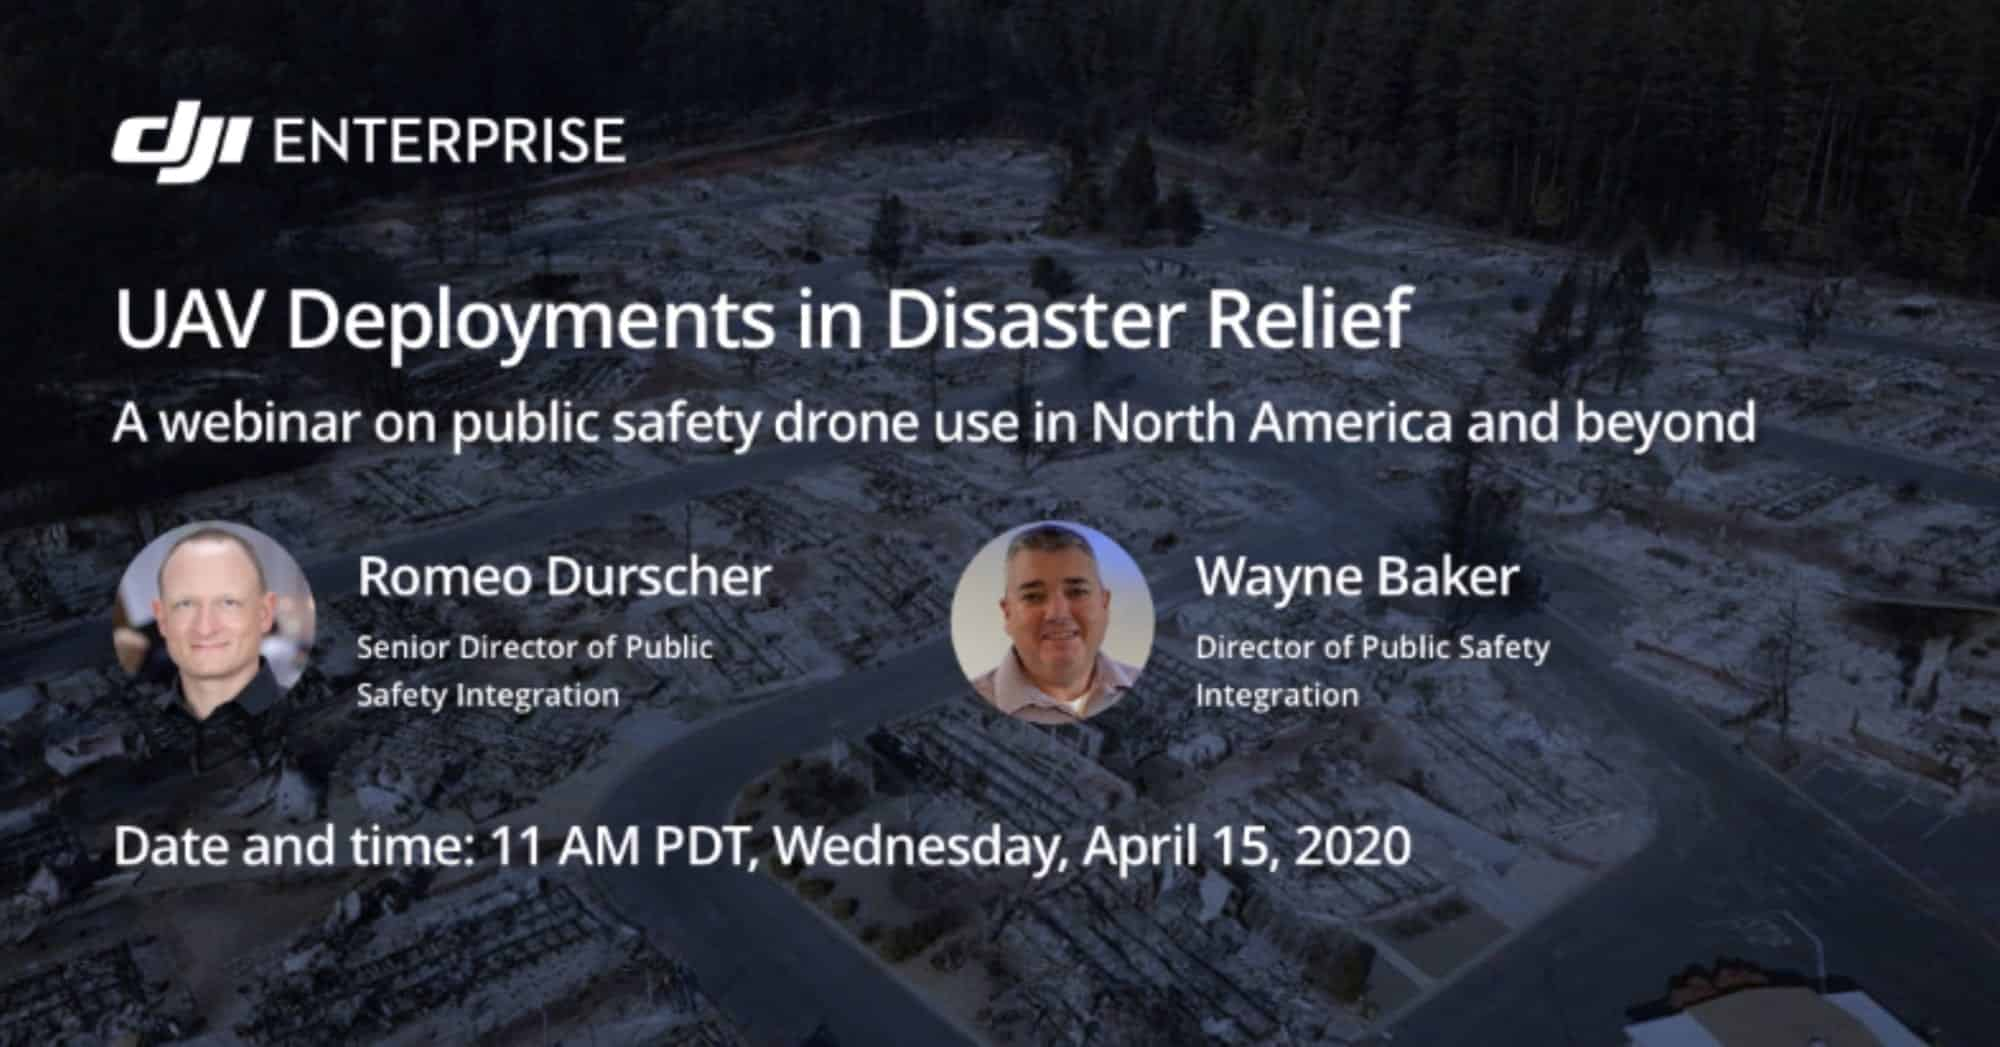 Join DJI's webinar on drone deployments in Disaster Relief